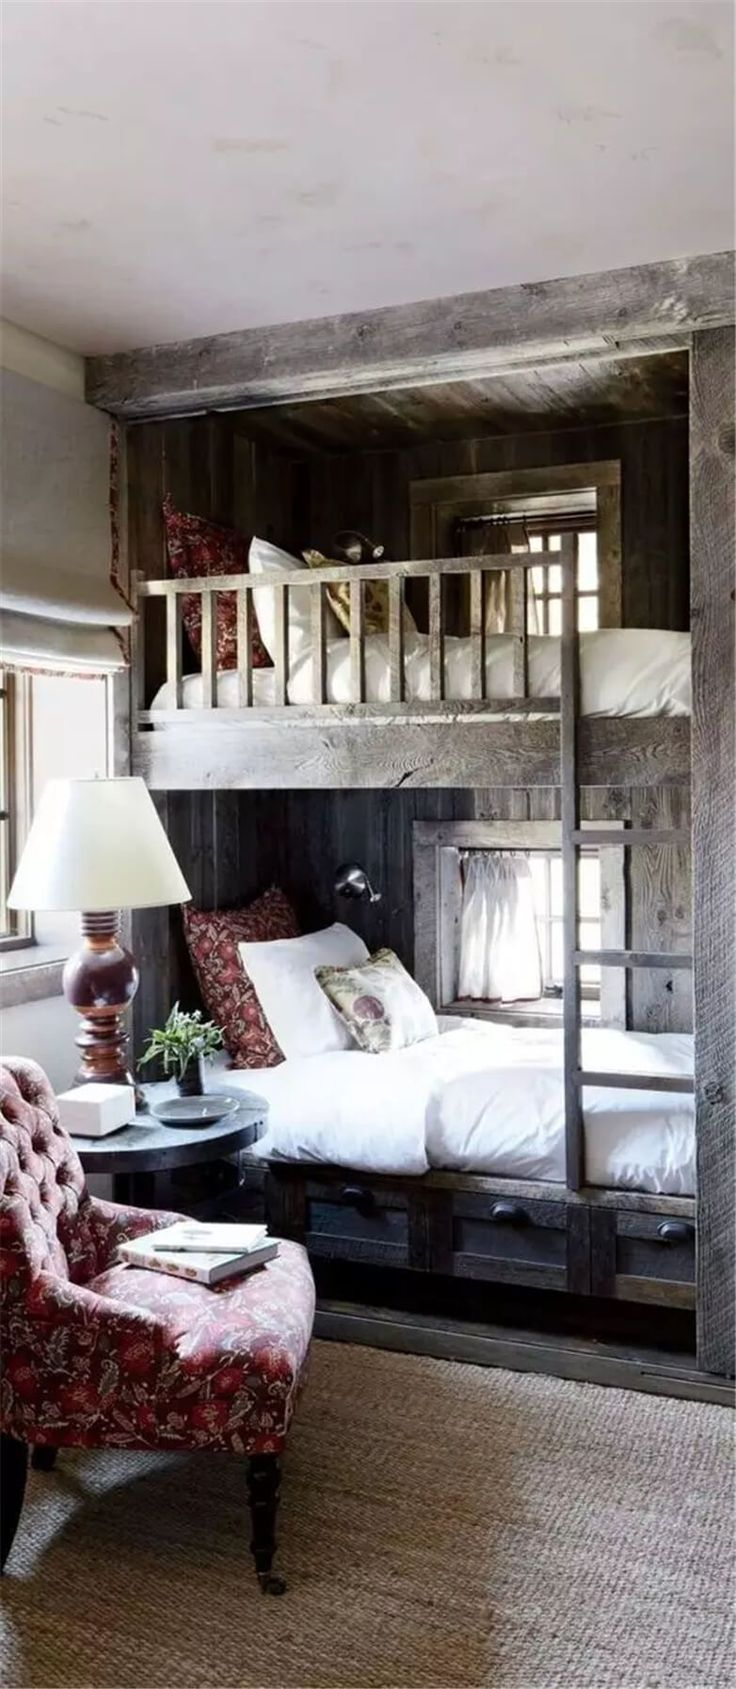 best 20+ amazing beds ideas on pinterest | awesome beds, amazing